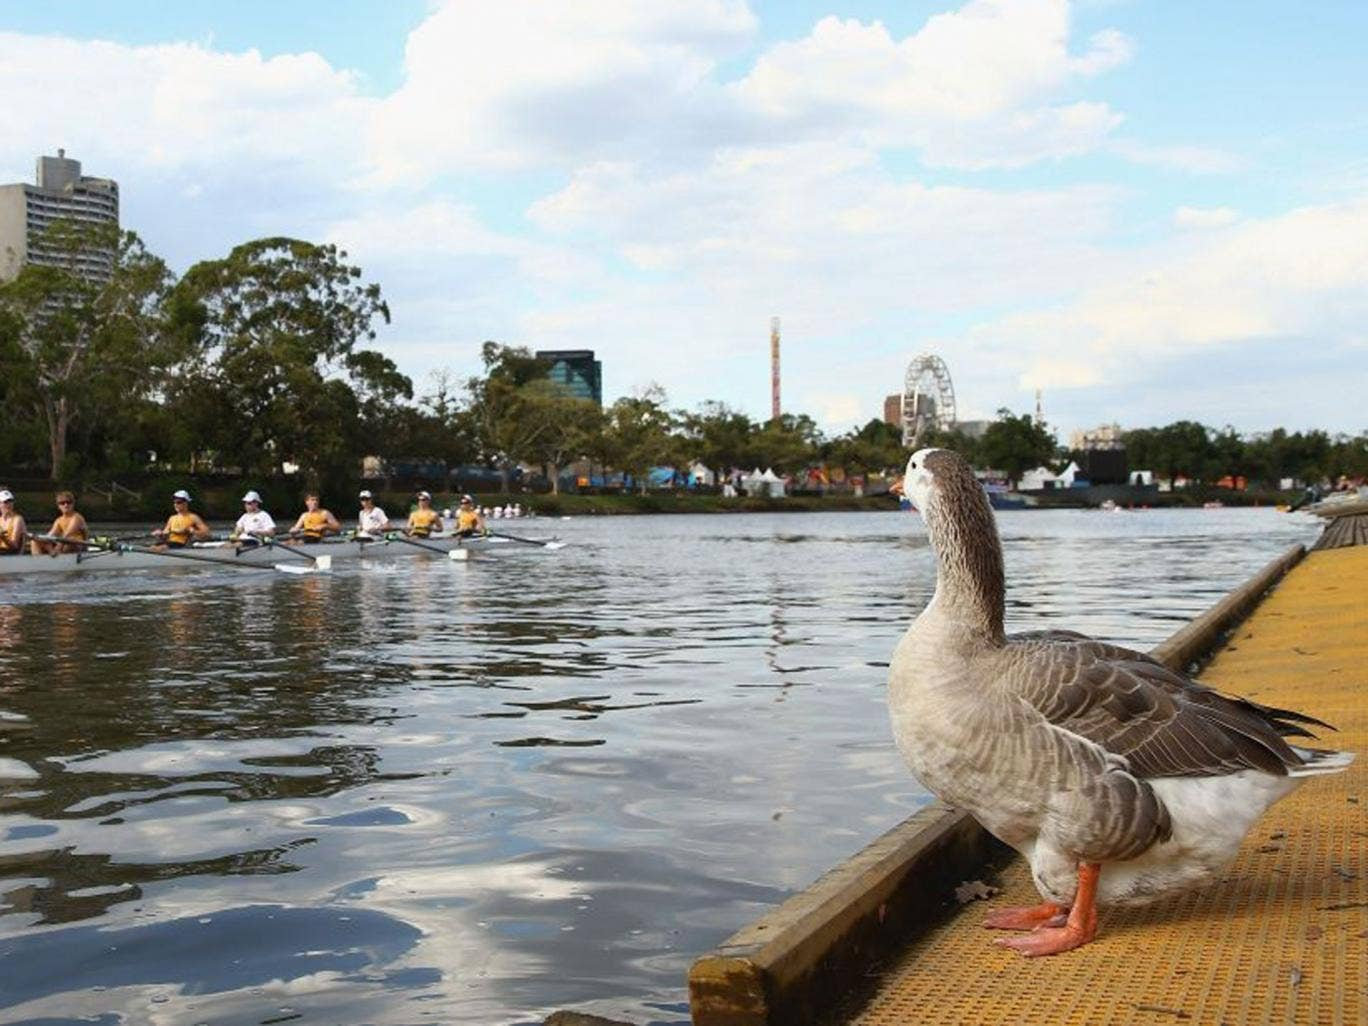 Rowing on Melbourne's Yarra River